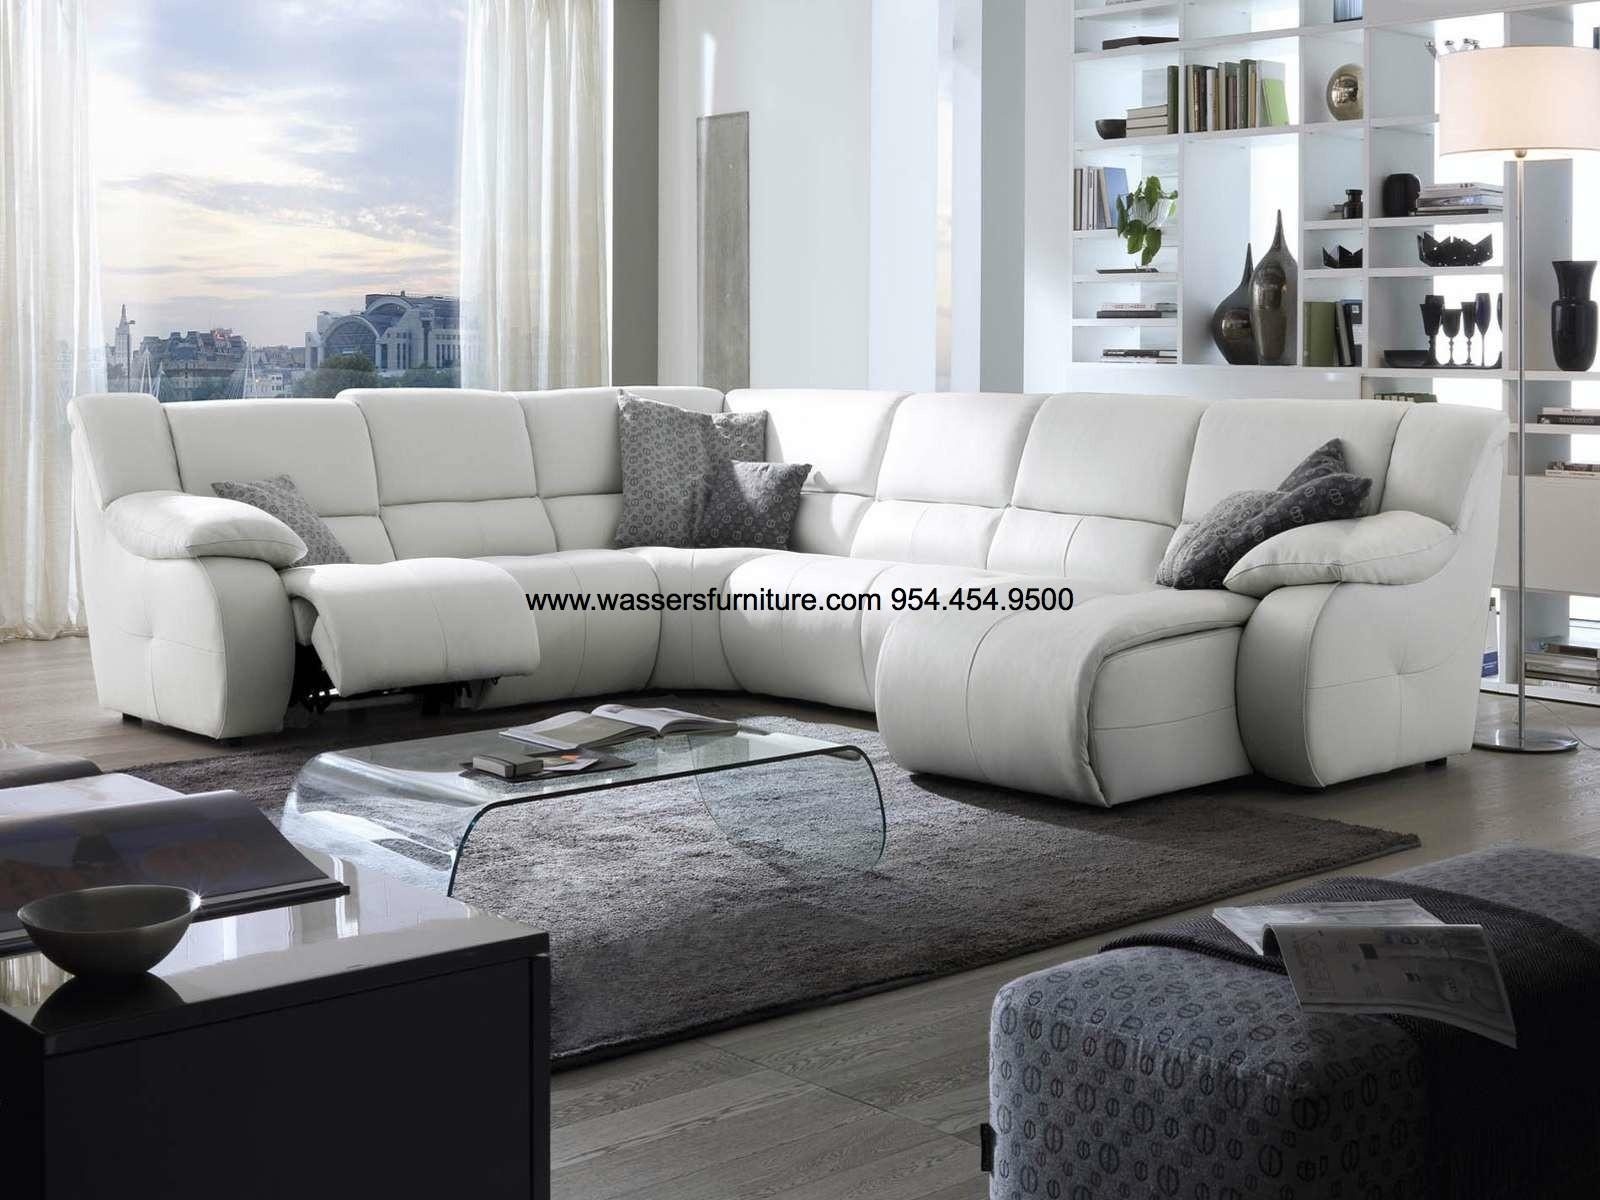 Motion Sofas And Sectionals – Leather Sectional Sofa In Leather Motion Sectional Sofa (View 17 of 20)